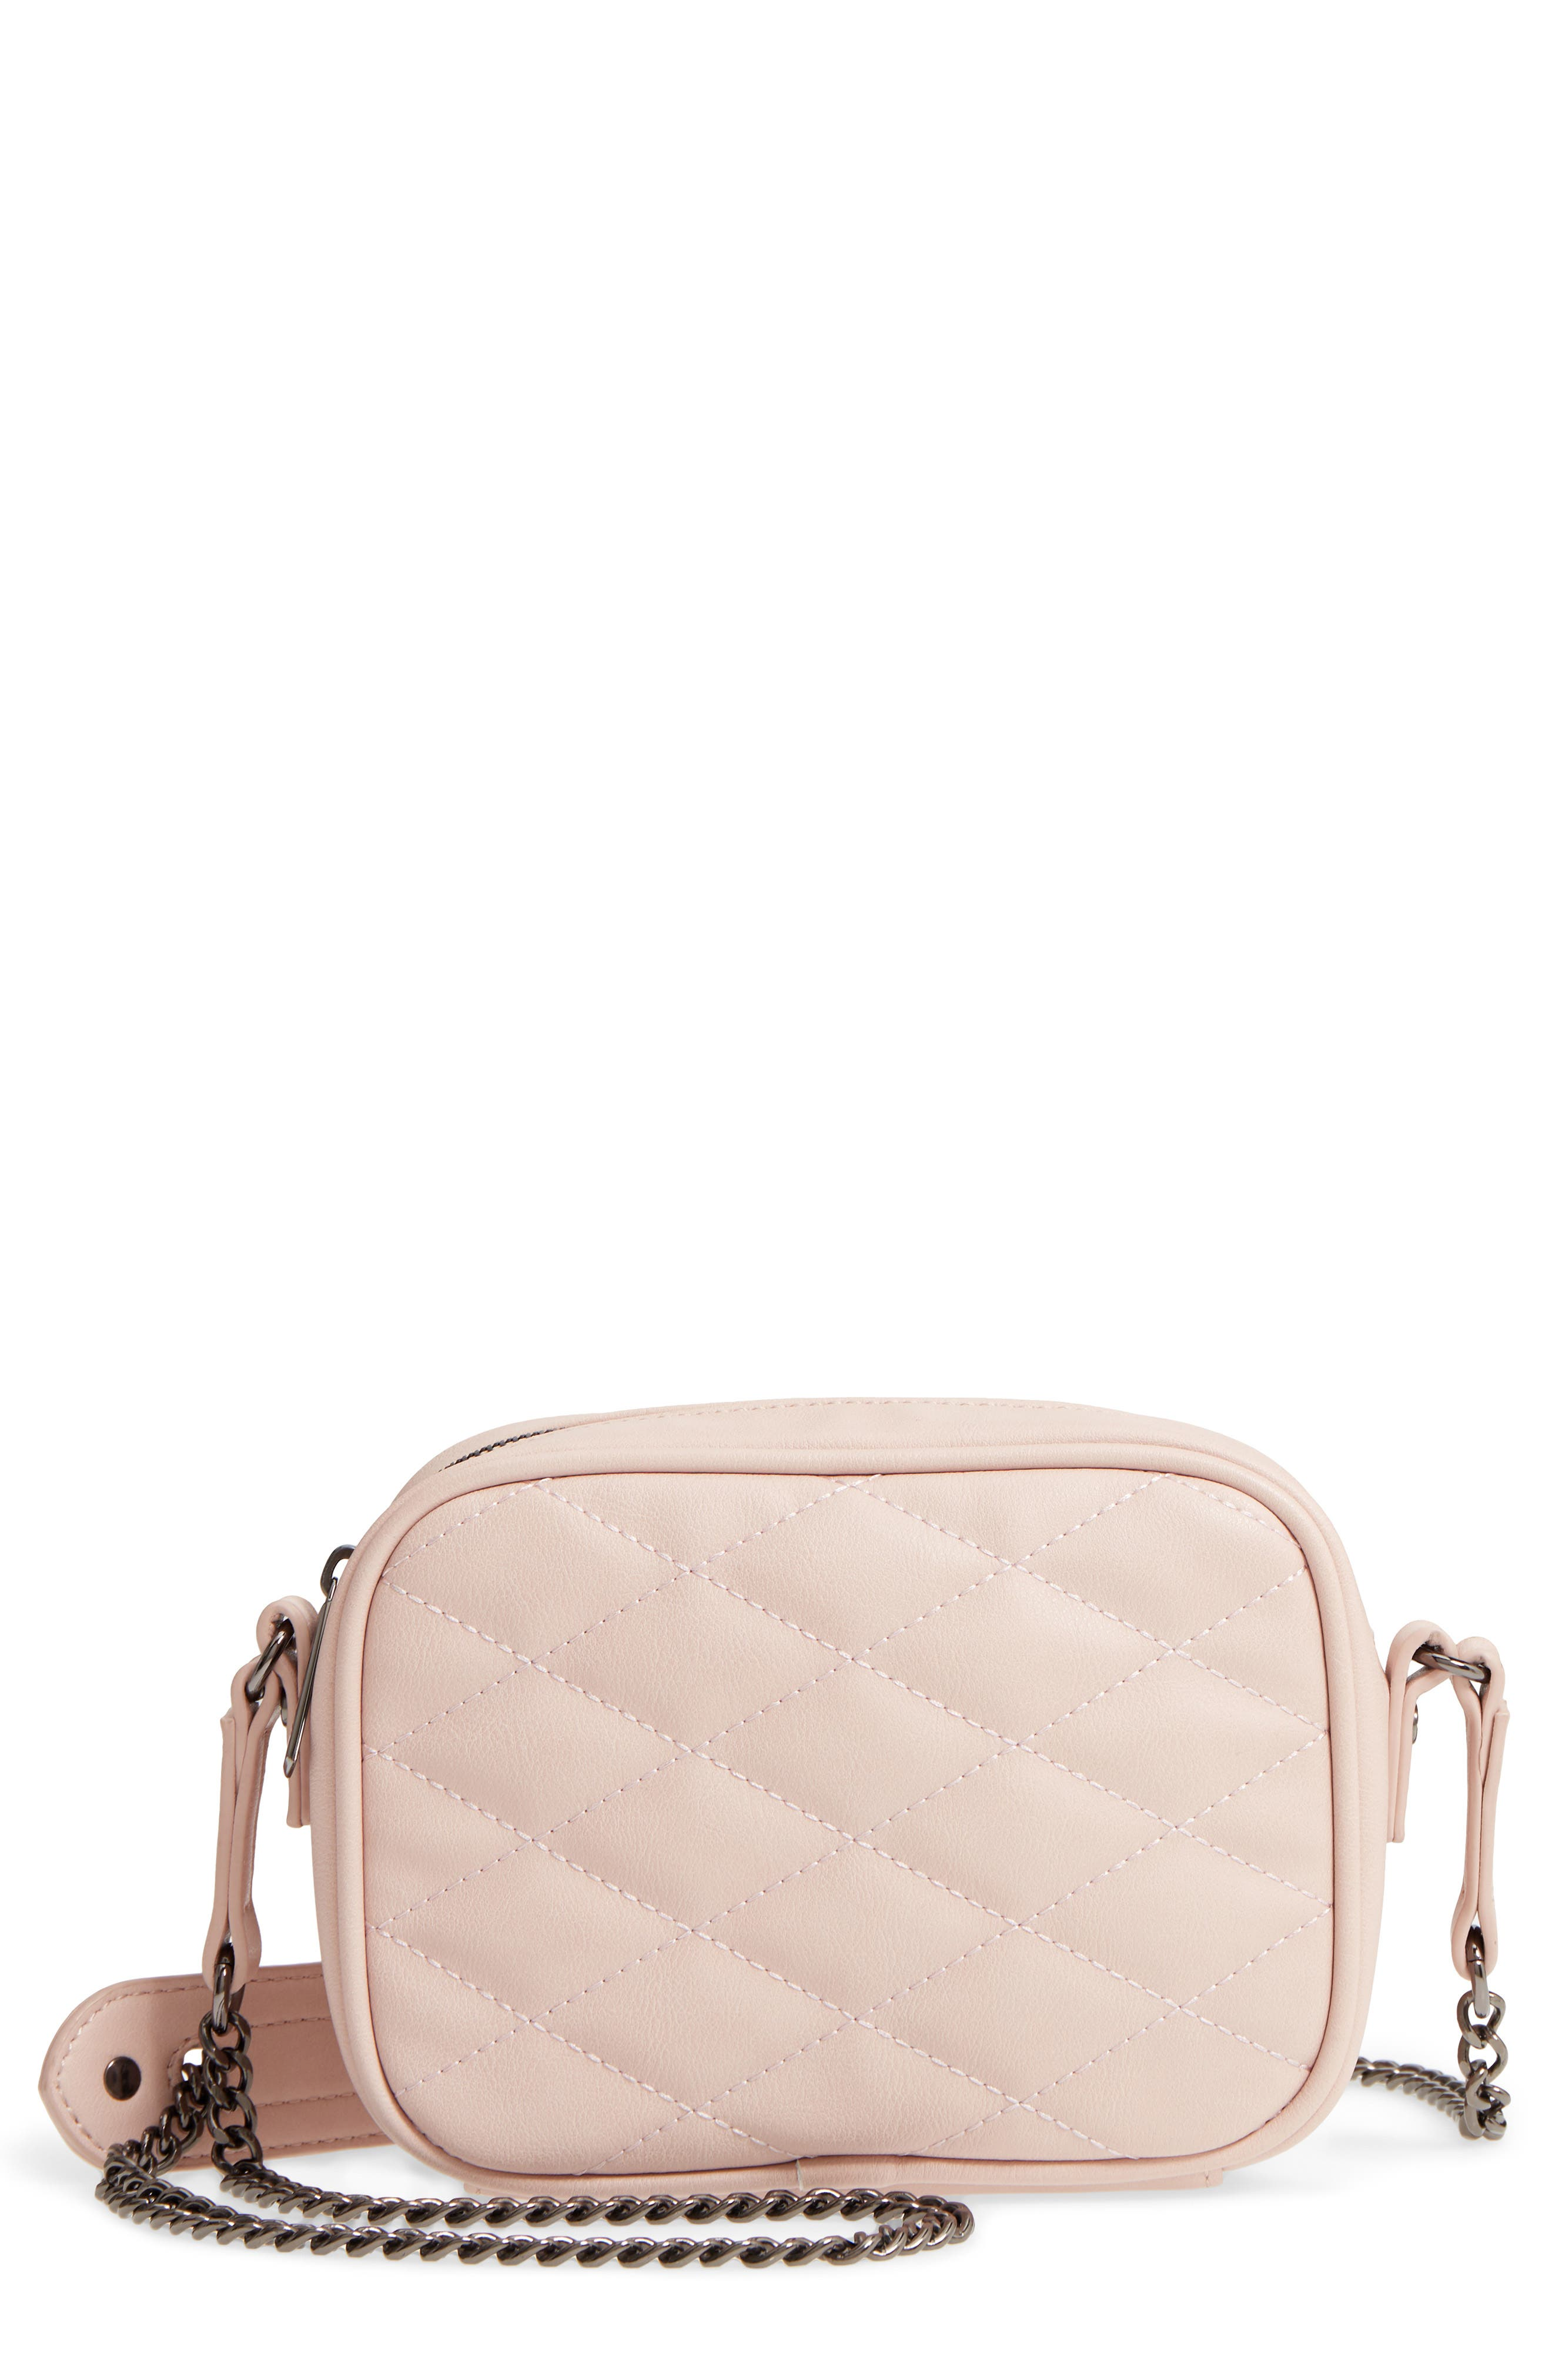 MALI + LILI Taylor Quilted Vegan Leather Crossbody Camera Bag, Main, color, 650